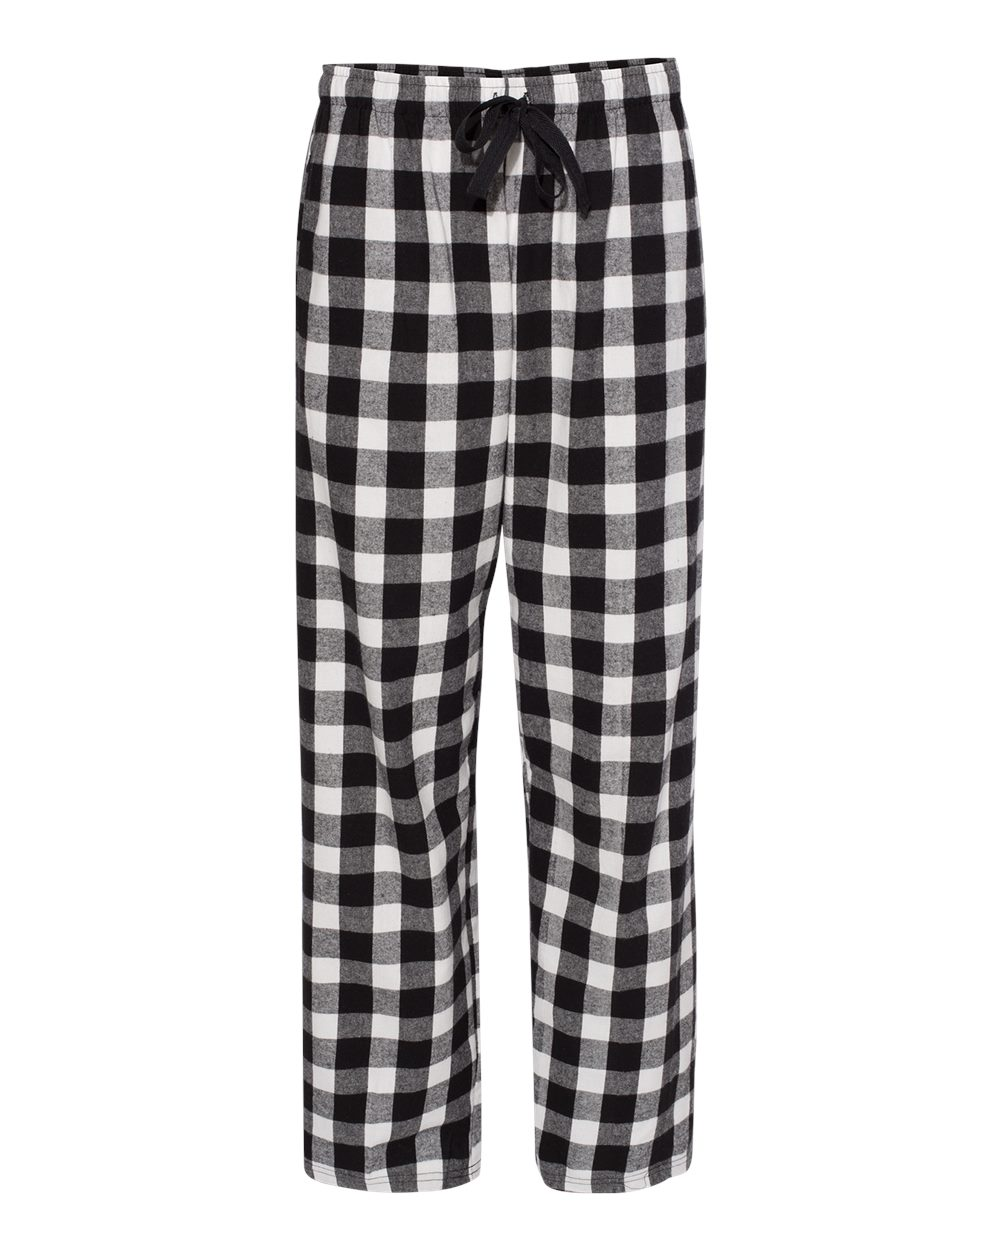 Boxercraft-Unisex-Flannel-Pants-With-Pockets-Pajama-Pants-F20-up-to-2XL thumbnail 51